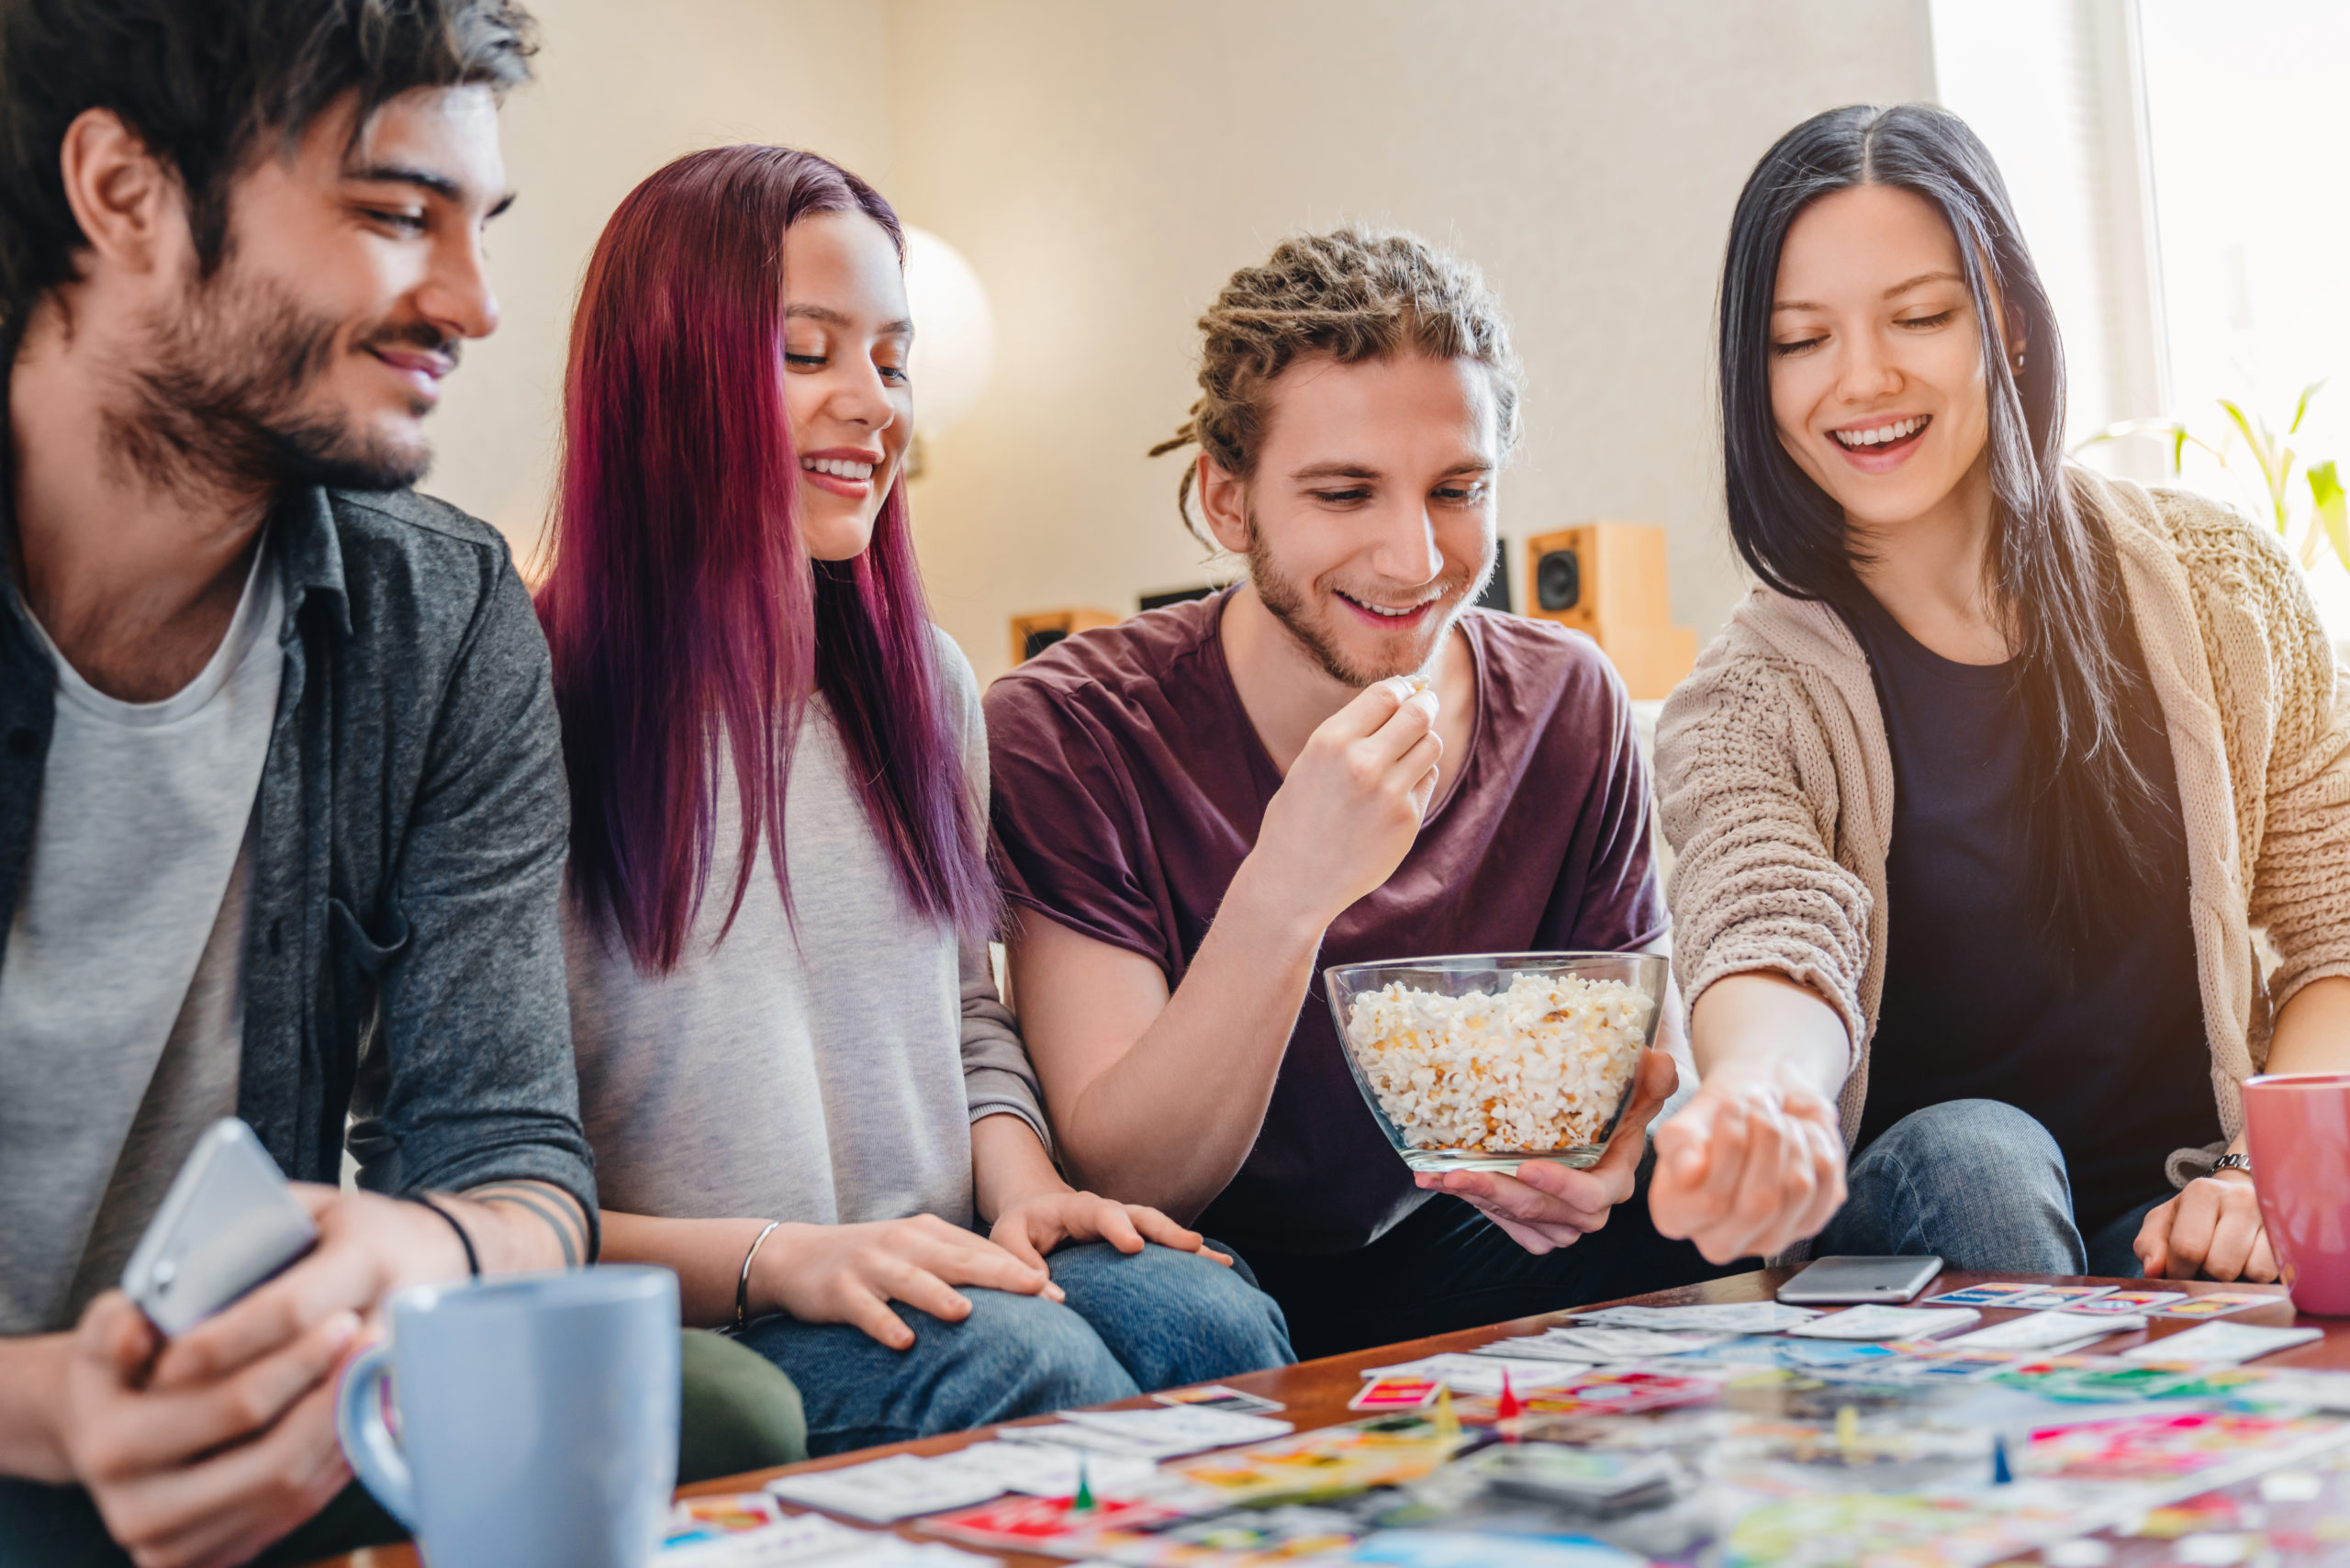 Young people playing board games together | tabletop game stores in Hanover, MD